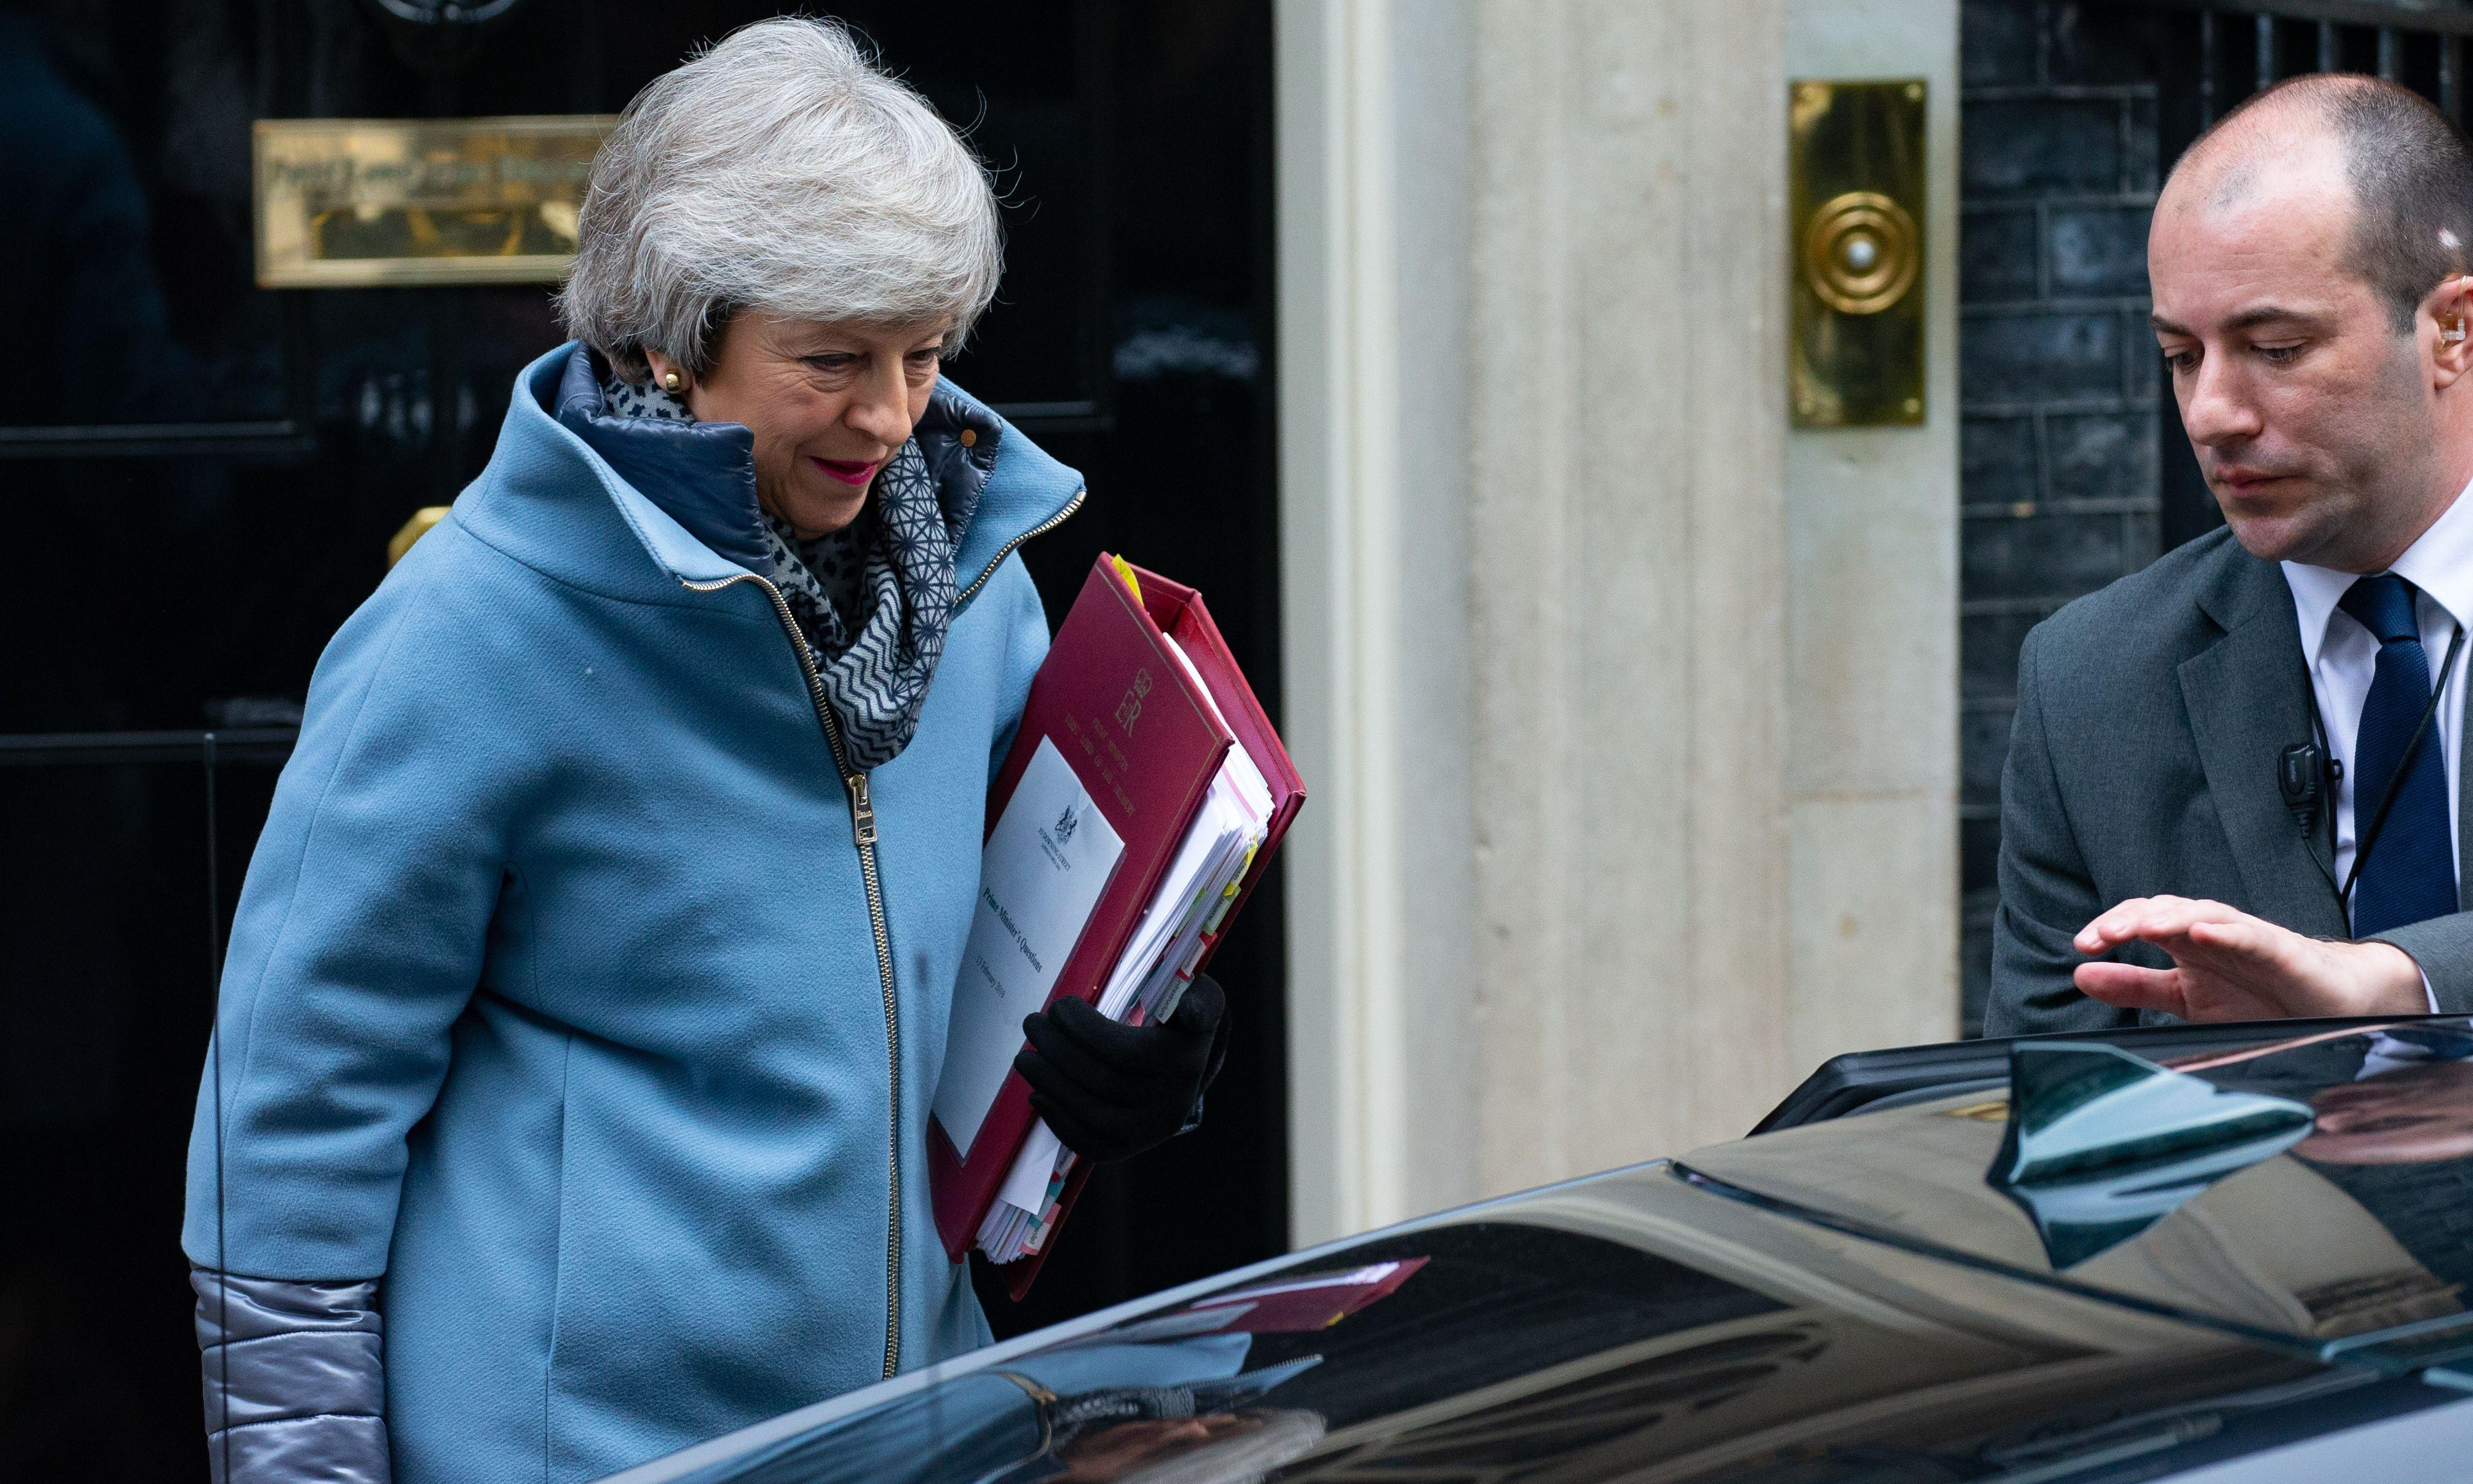 Theresa May must go in three months, cabinet ministers say